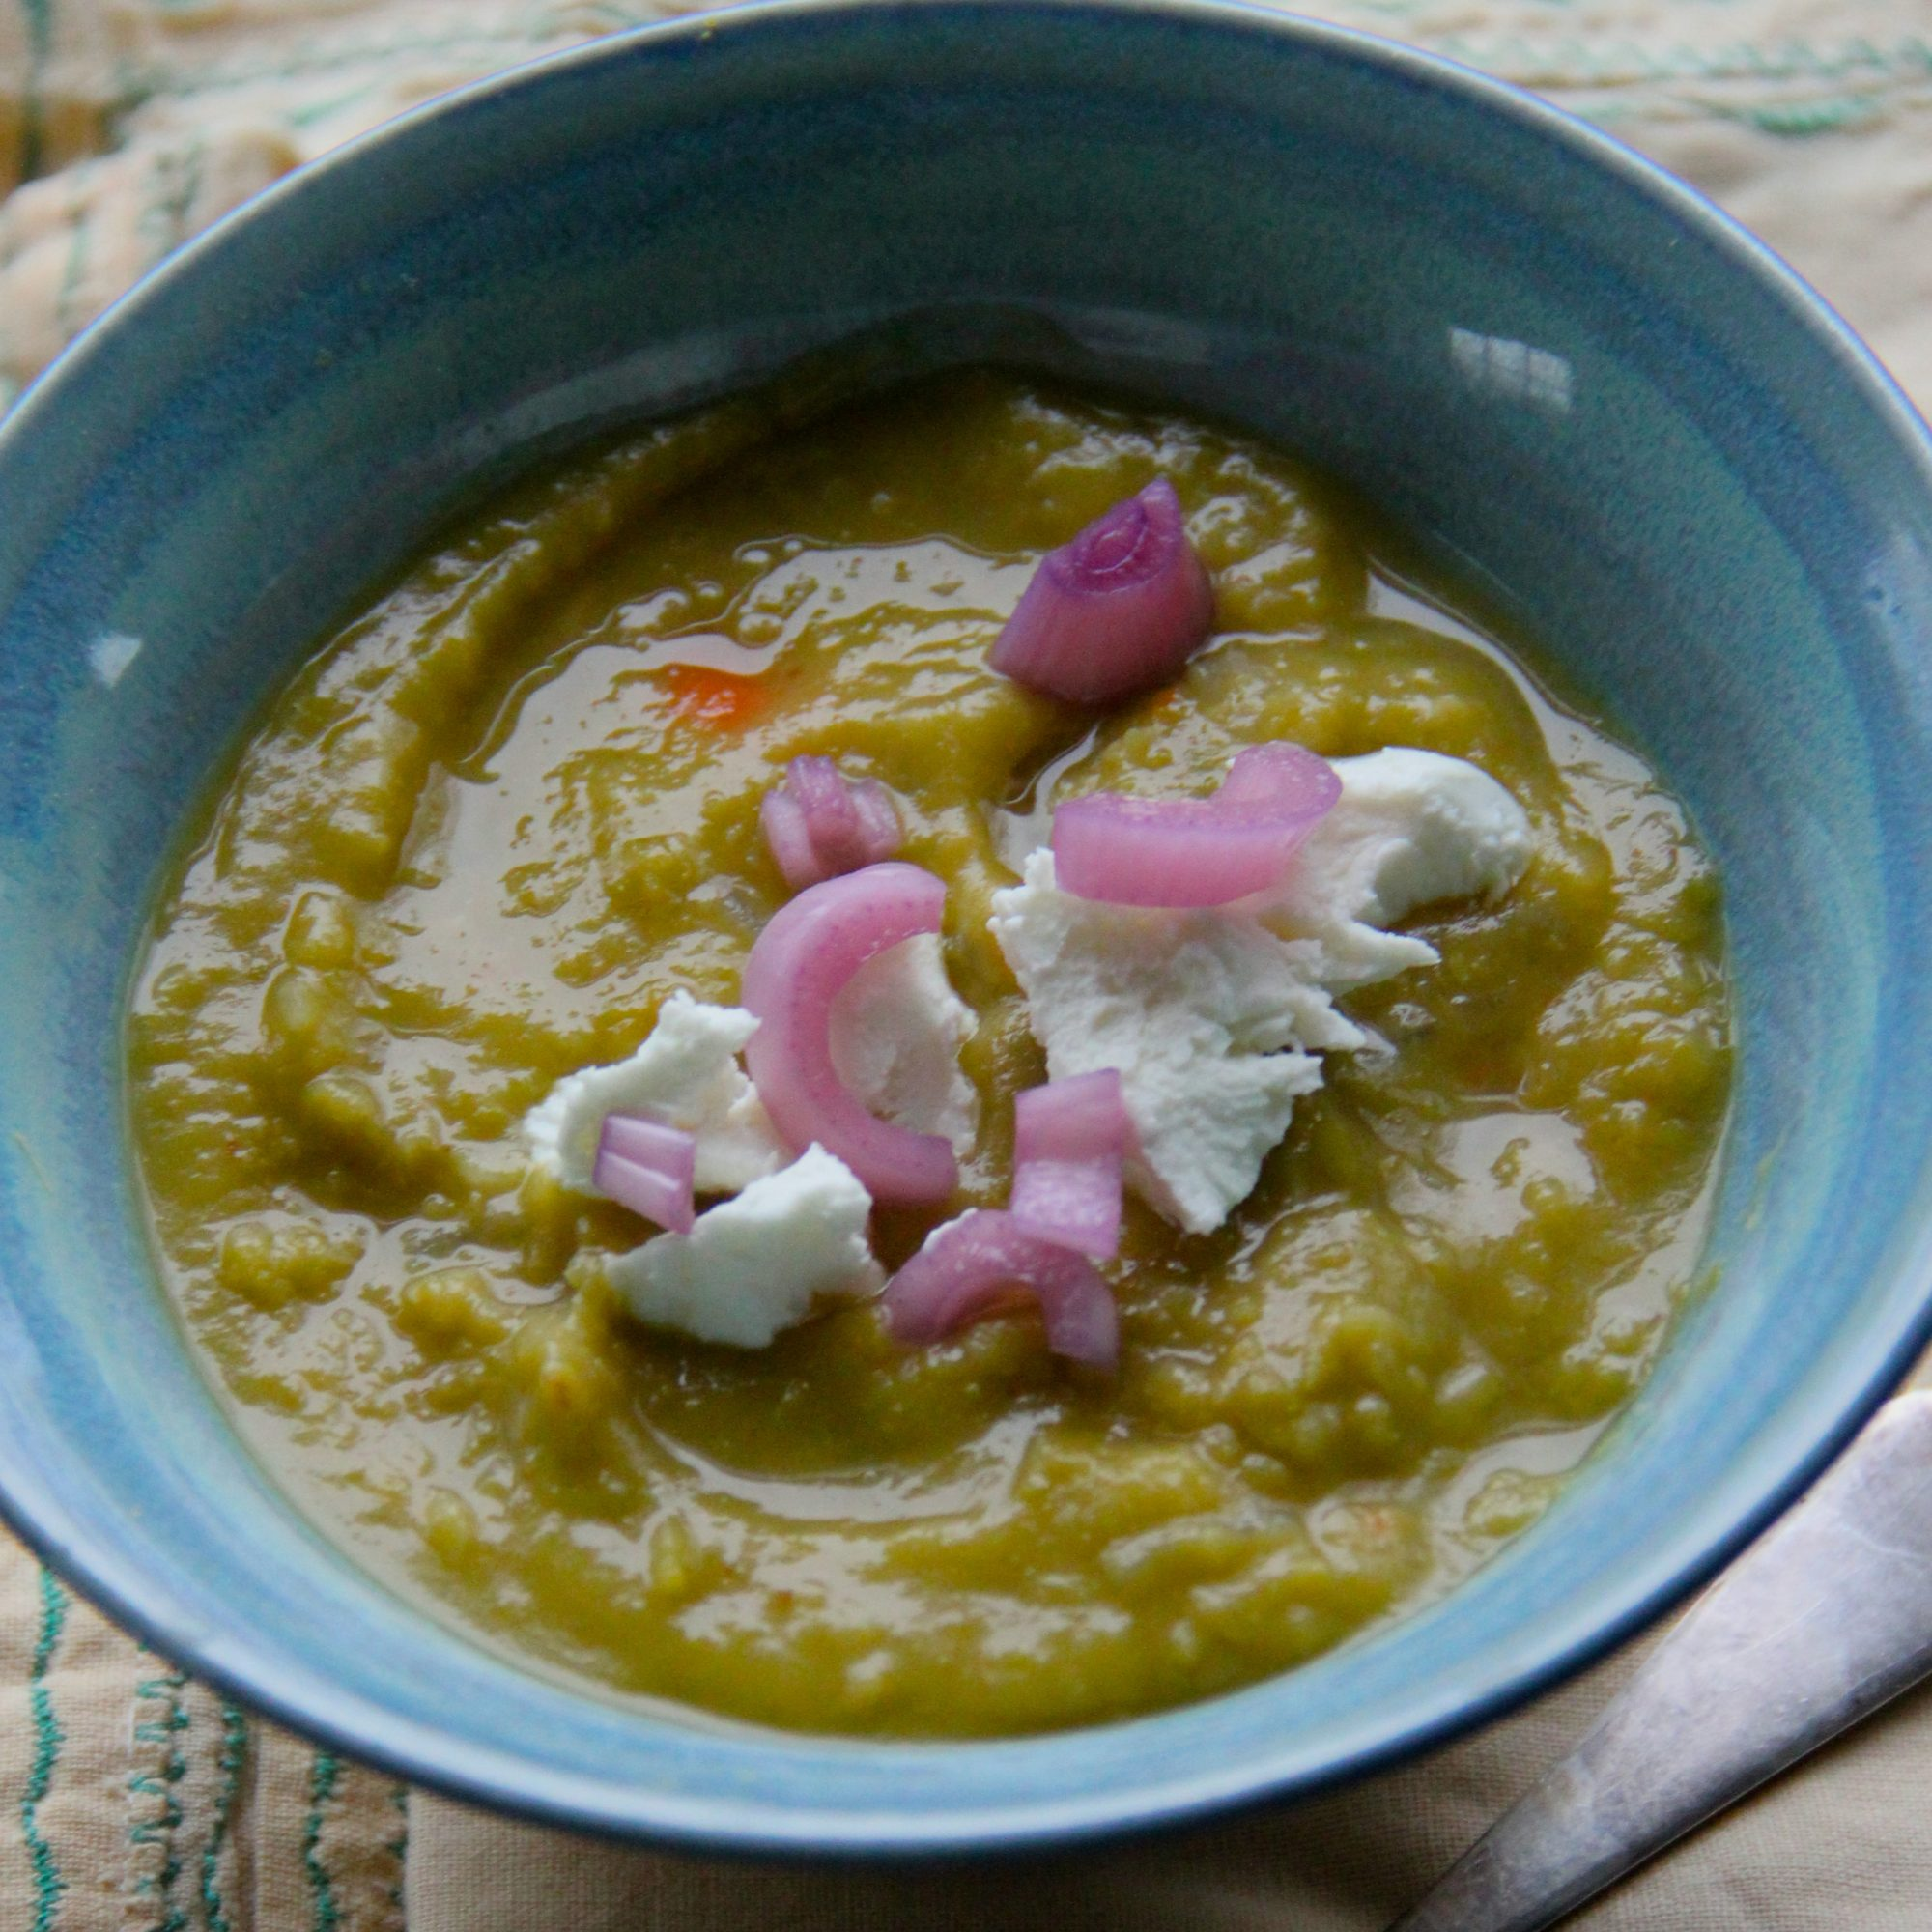 hp-hd-201503-r-split-pea-soup-with-goat-cheese-and-pickled-shallot.jpg